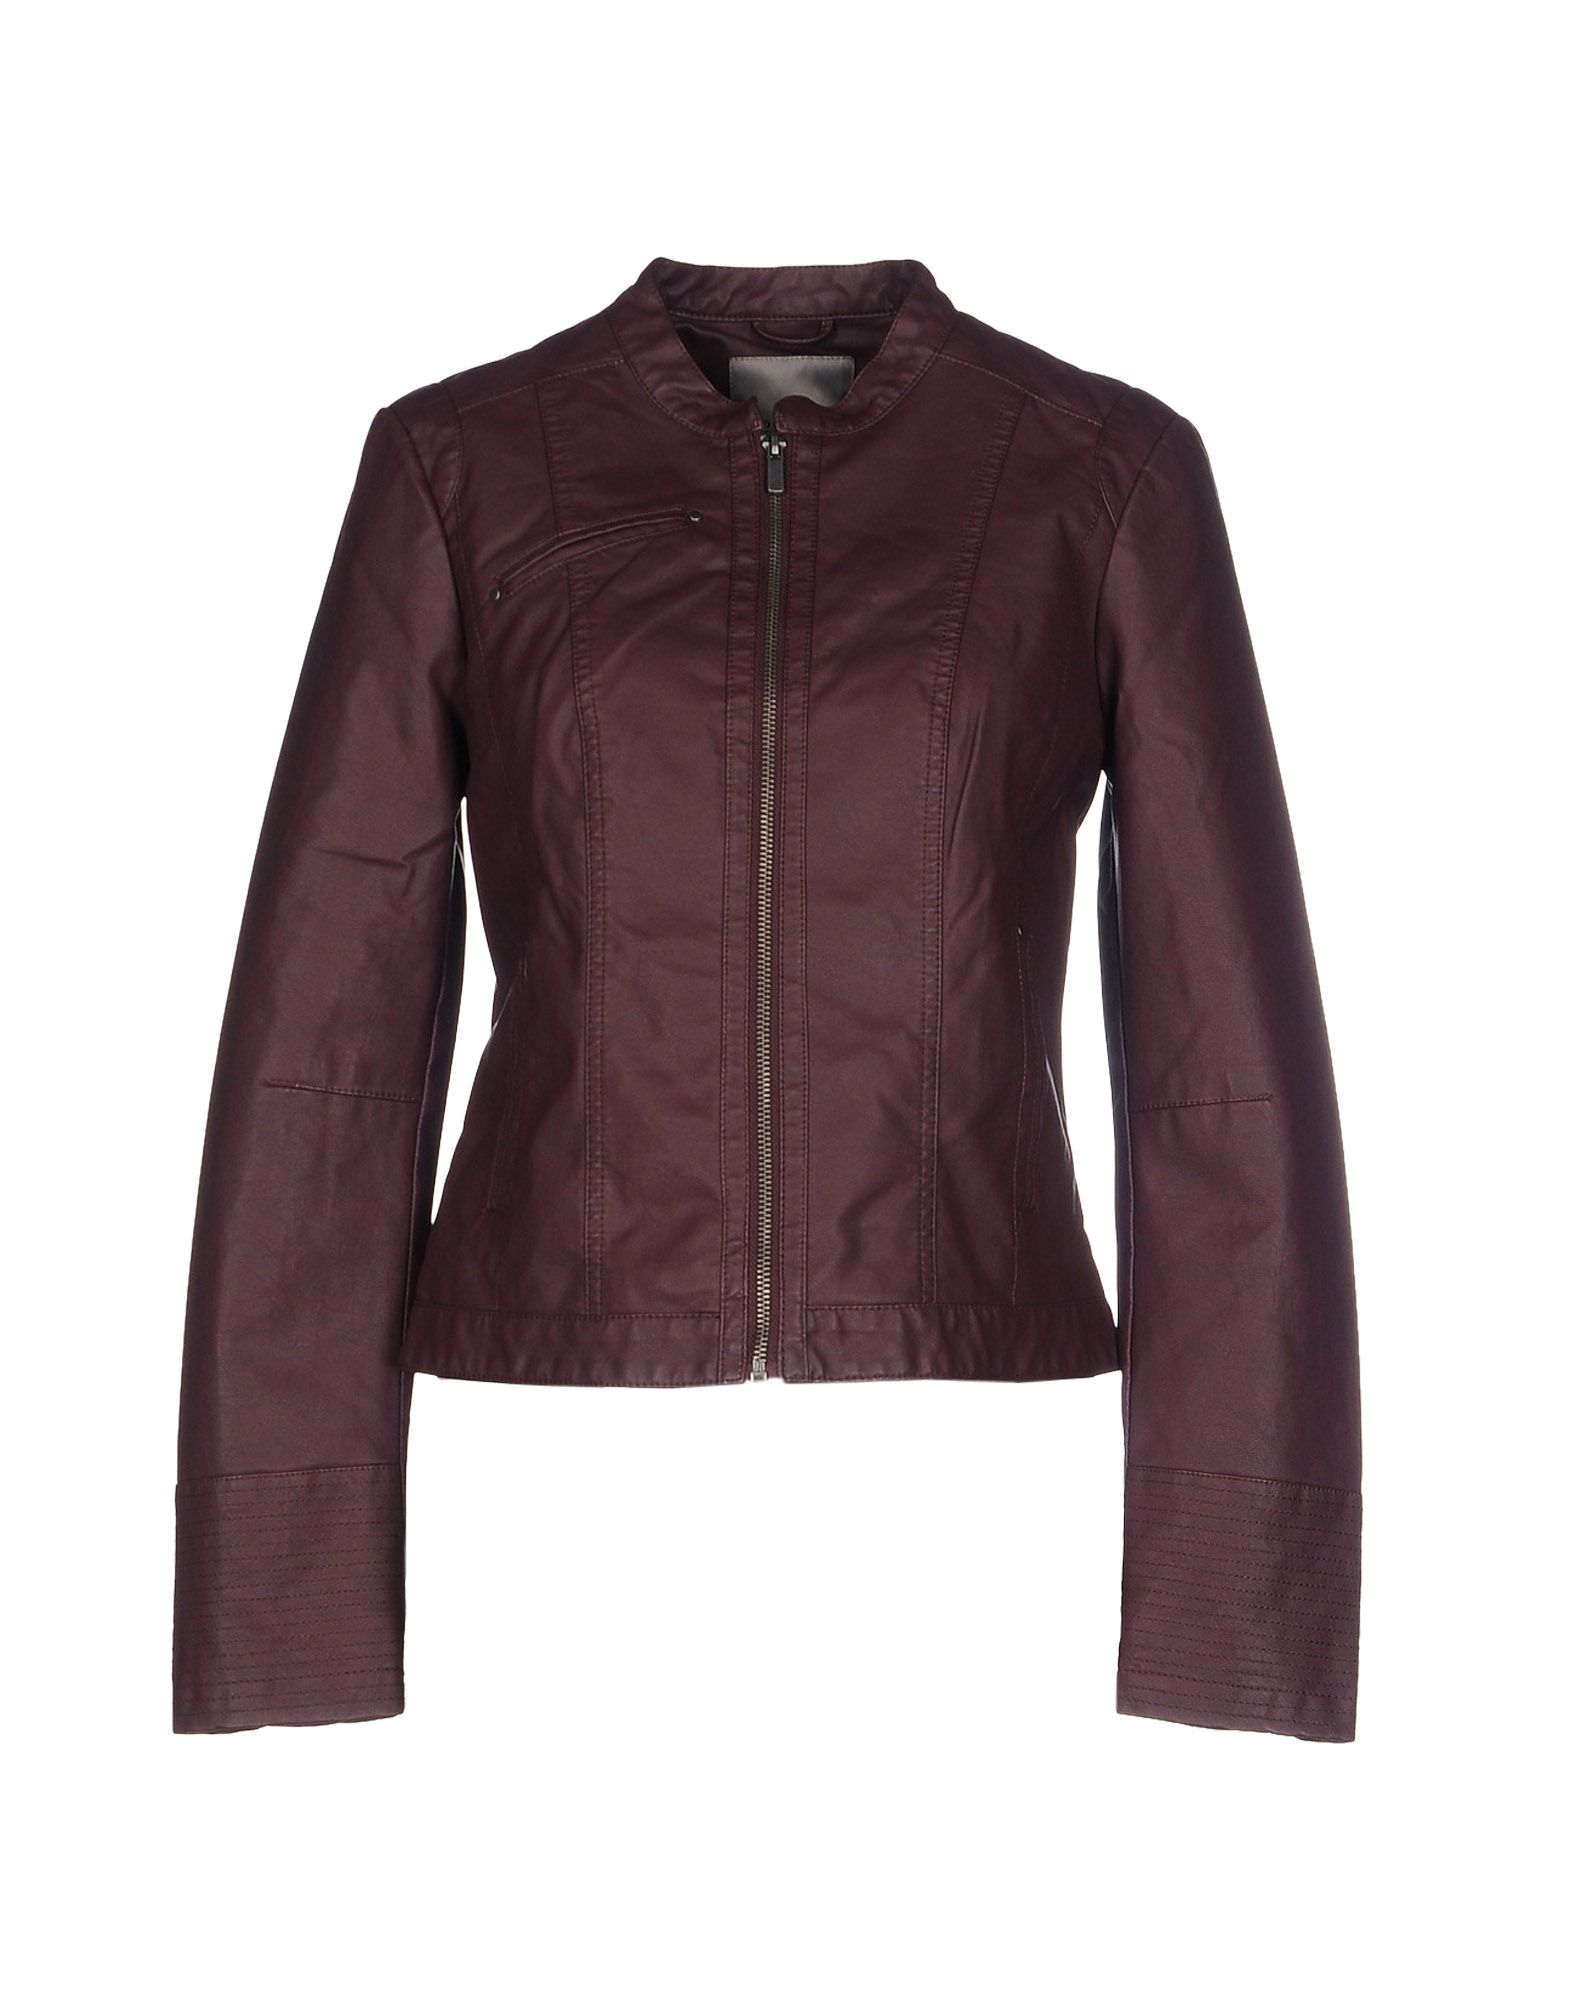 vero moda jacket in purple mauve save 44 lyst. Black Bedroom Furniture Sets. Home Design Ideas